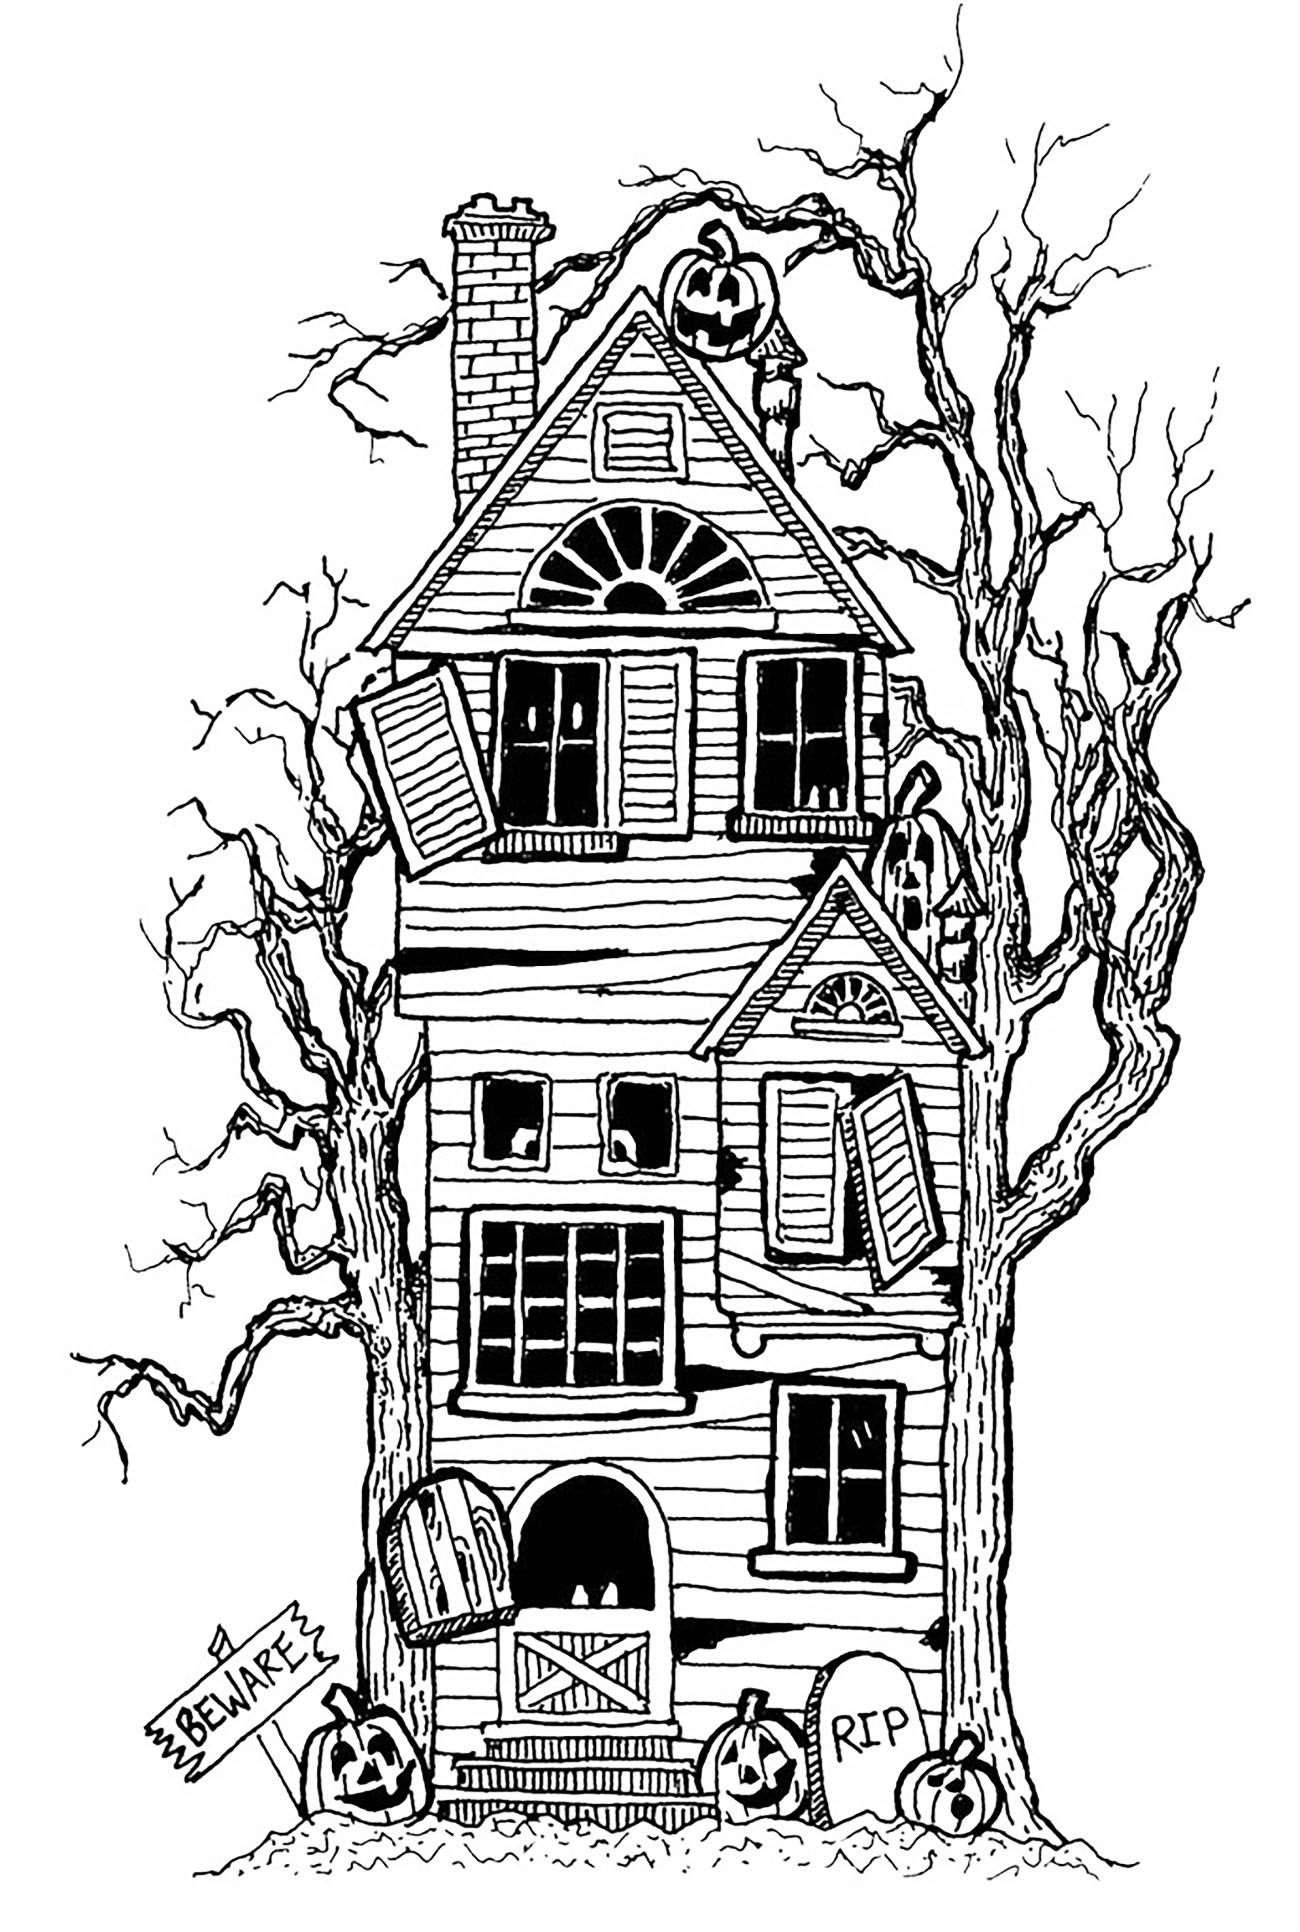 my childhood halloween memories inspired this haunted house pen and ink - Coloring Pages Houses Homes